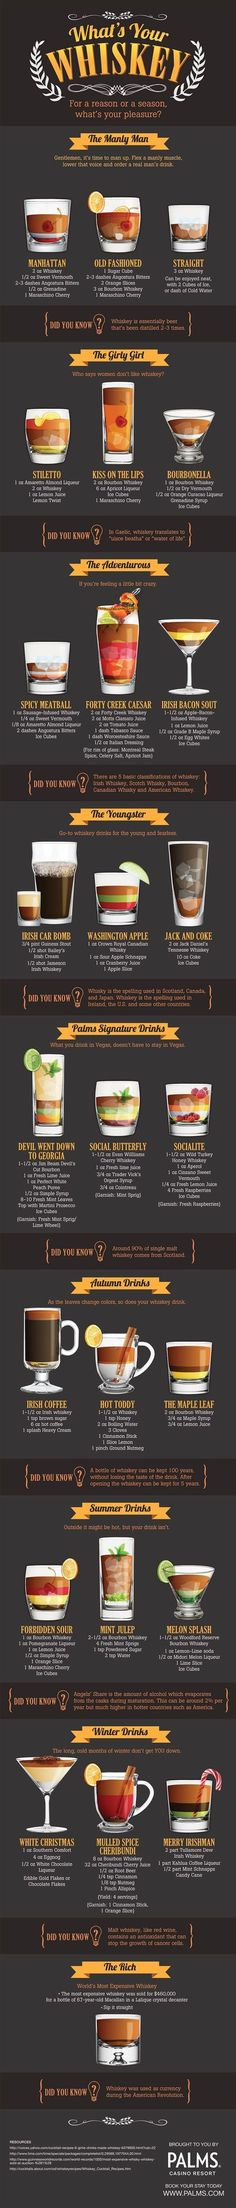 """This eye-catching infographic, titled: """"What's Your Whiskey?"""", covers an array of topics that all have to do with this distinguished type of alcohol including its' extensive history, popular drink recipes for all types of occasions and tons of interesting facts! http://www.palms.com/palms-blog/what_s_your_whiskey"""